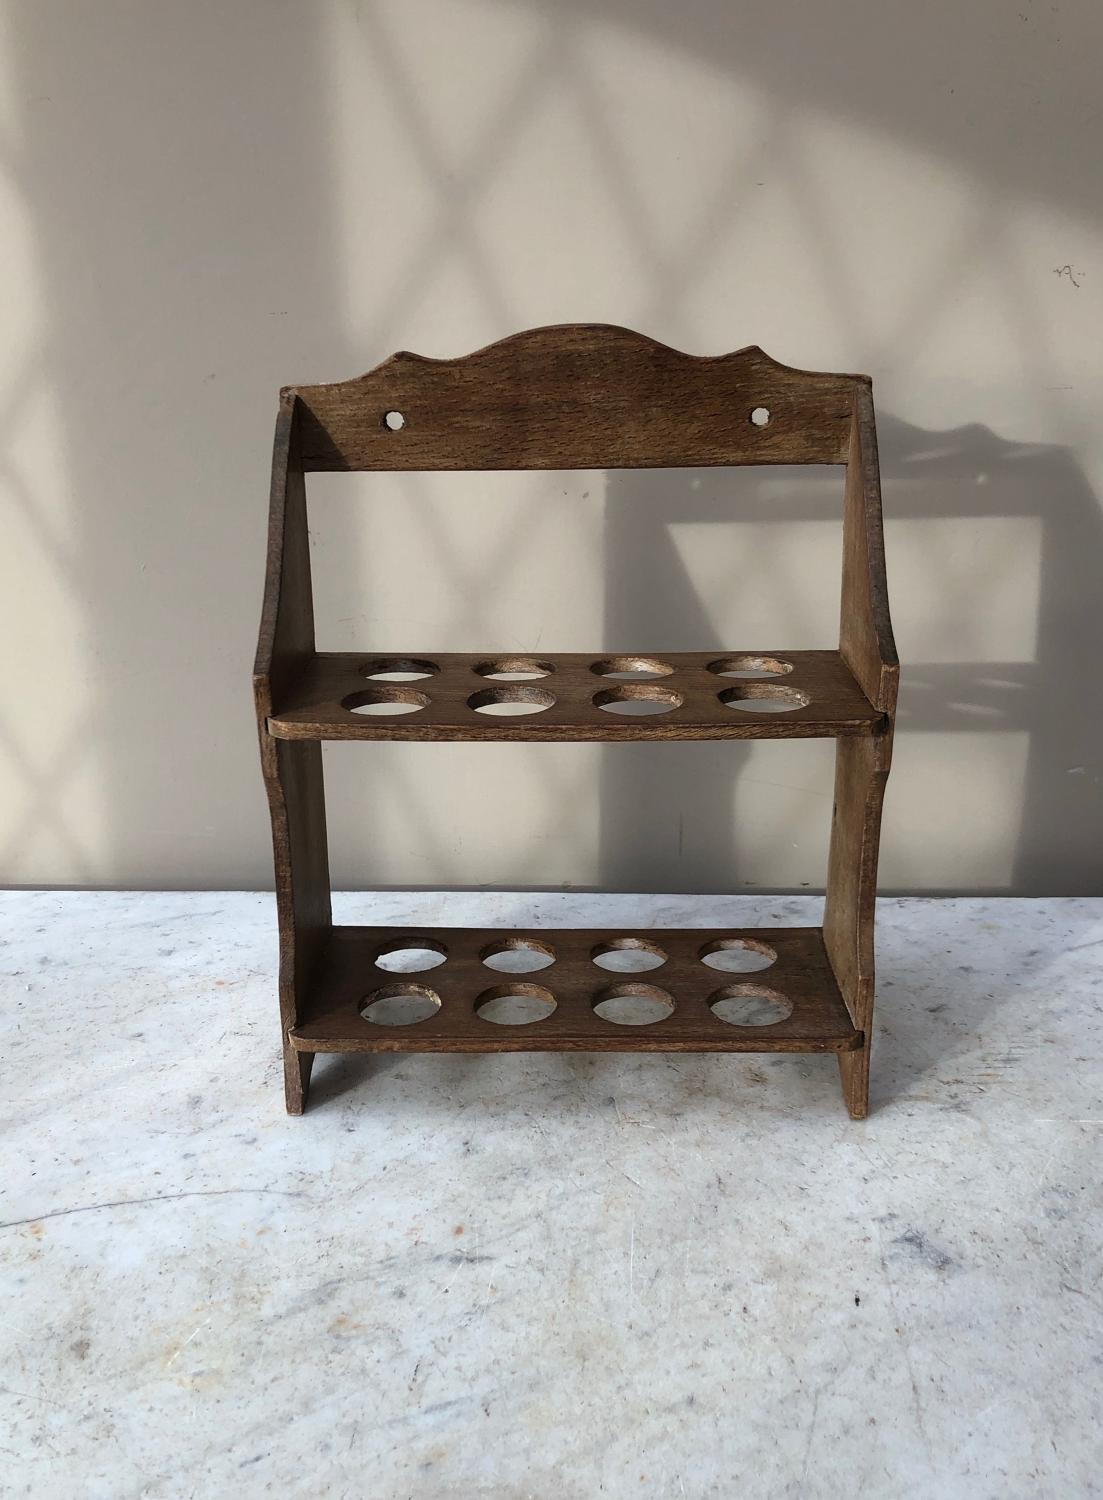 Early 20th Century Two Tier Egg Rack - Wall Hung